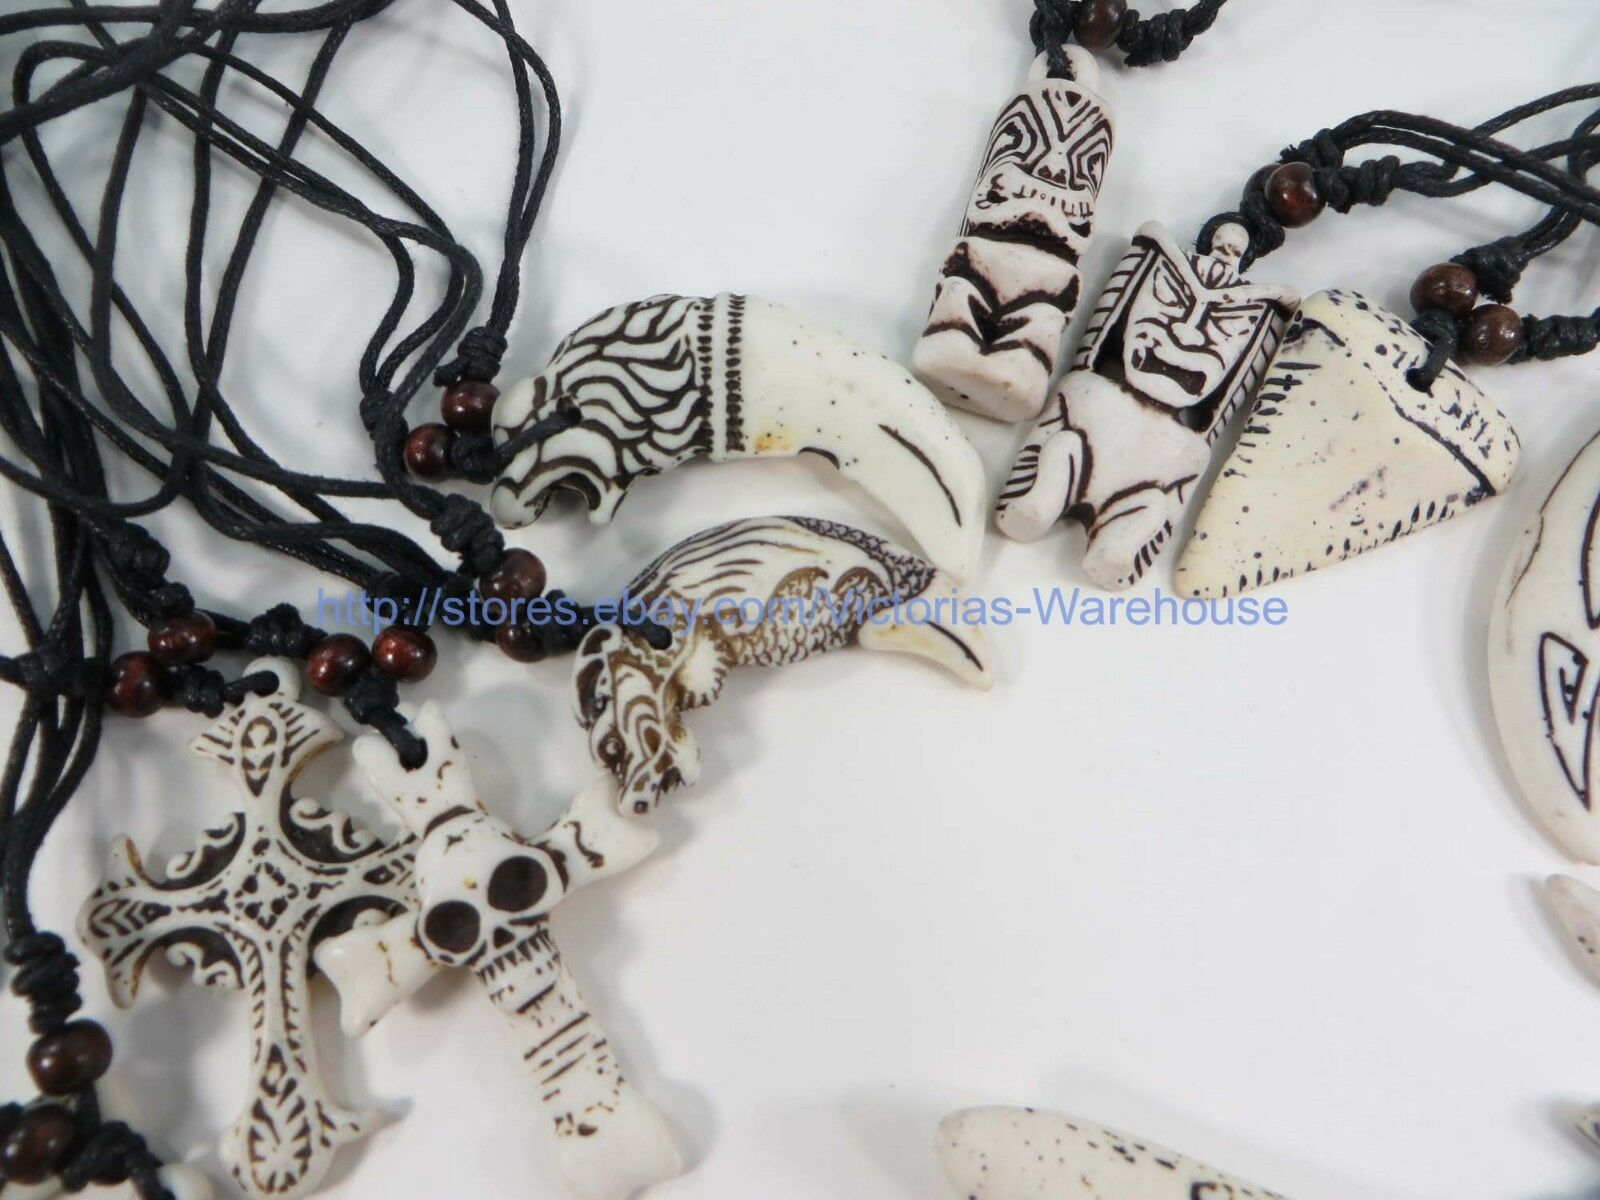 20 pieces wholesale necklace lot hippie pendant necklaces wholesale jewelry lot